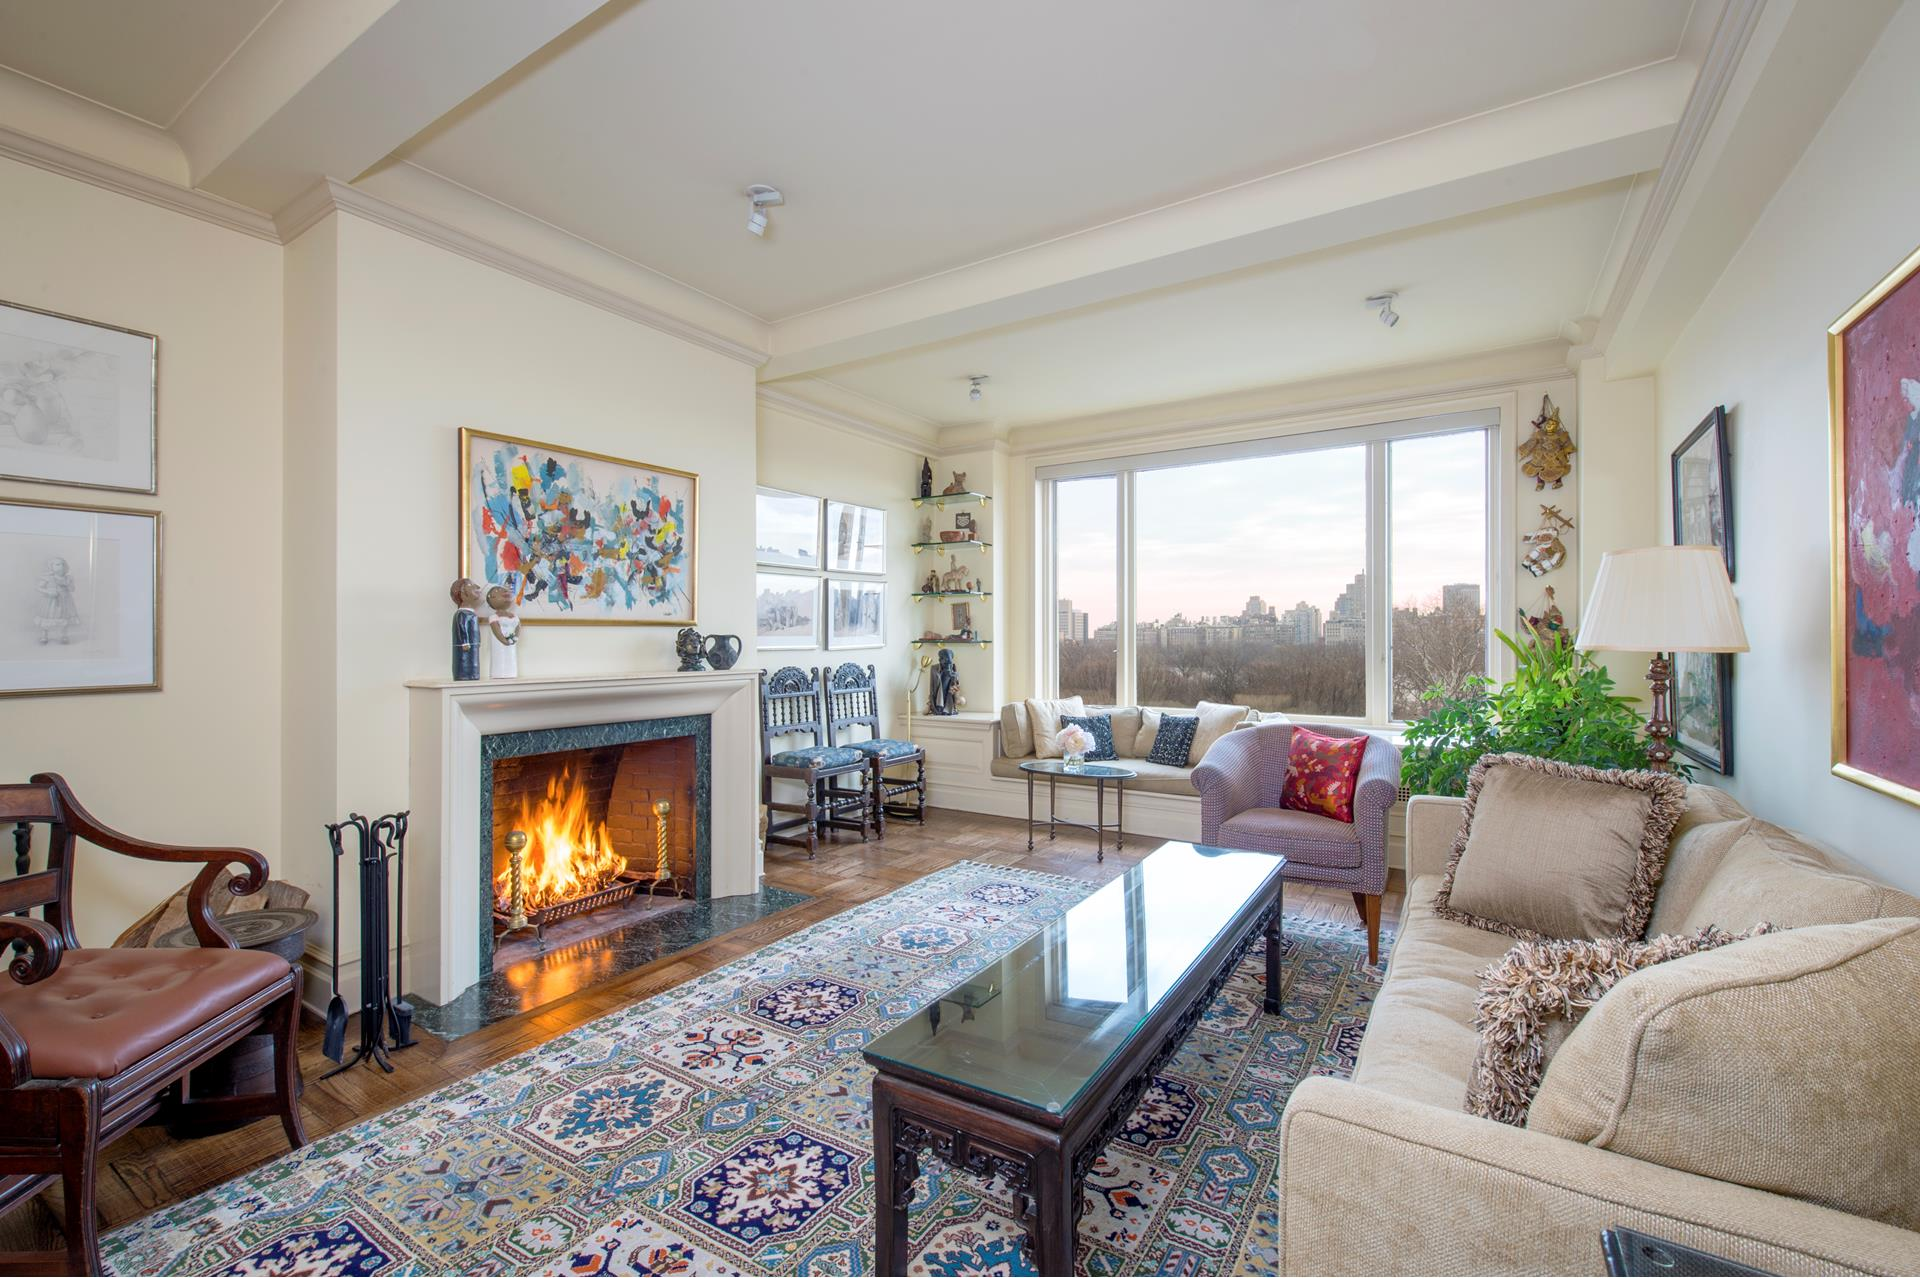 322 Realty Corp, 322 Central Park West, 9C - Upper West Side, New York